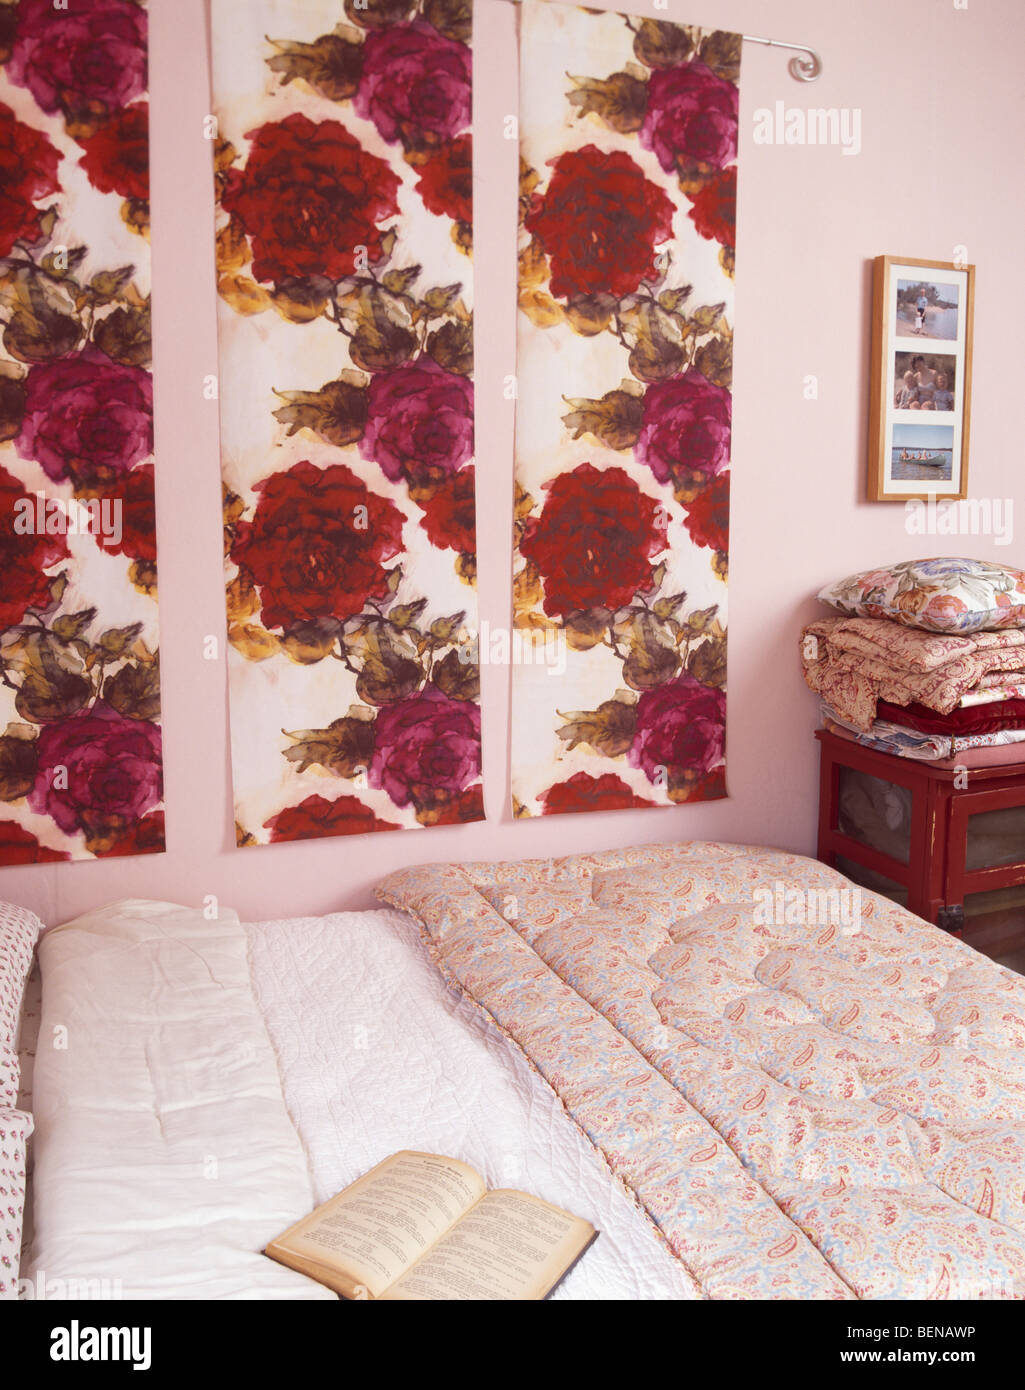 Small pink bedroom with red rose-patterned fabric panels on ...